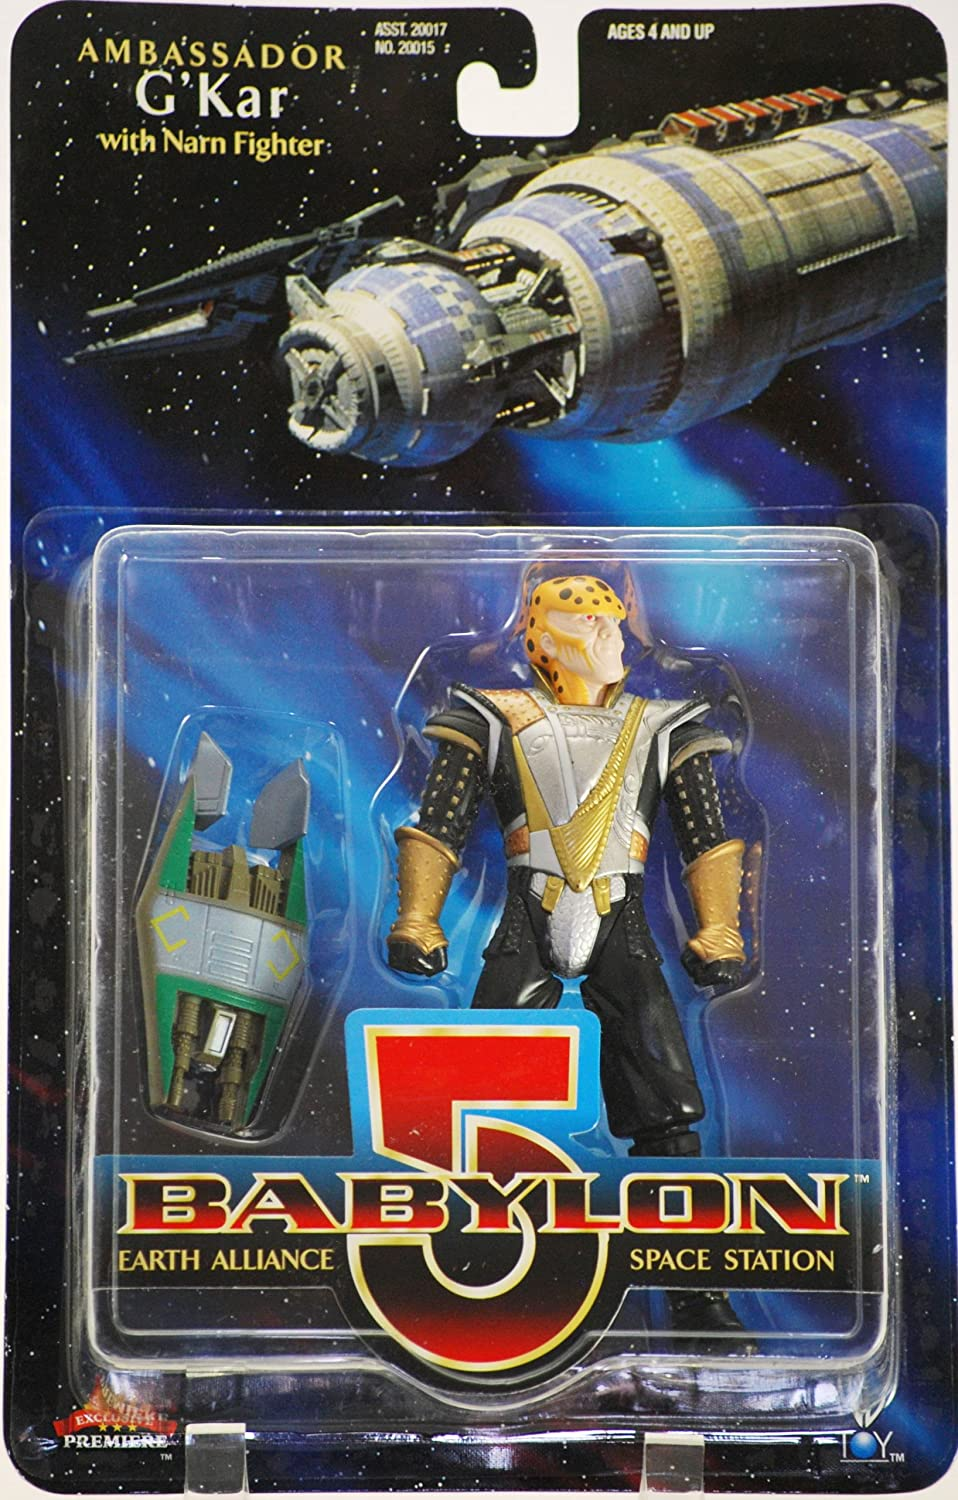 New Collectible w// Narn Fighter Out of Production Rare 1997 WB Toys // Exclusive Premiere Dist Babylon 5 Earth Alliance Space Station Ambassador GKar Action Figure